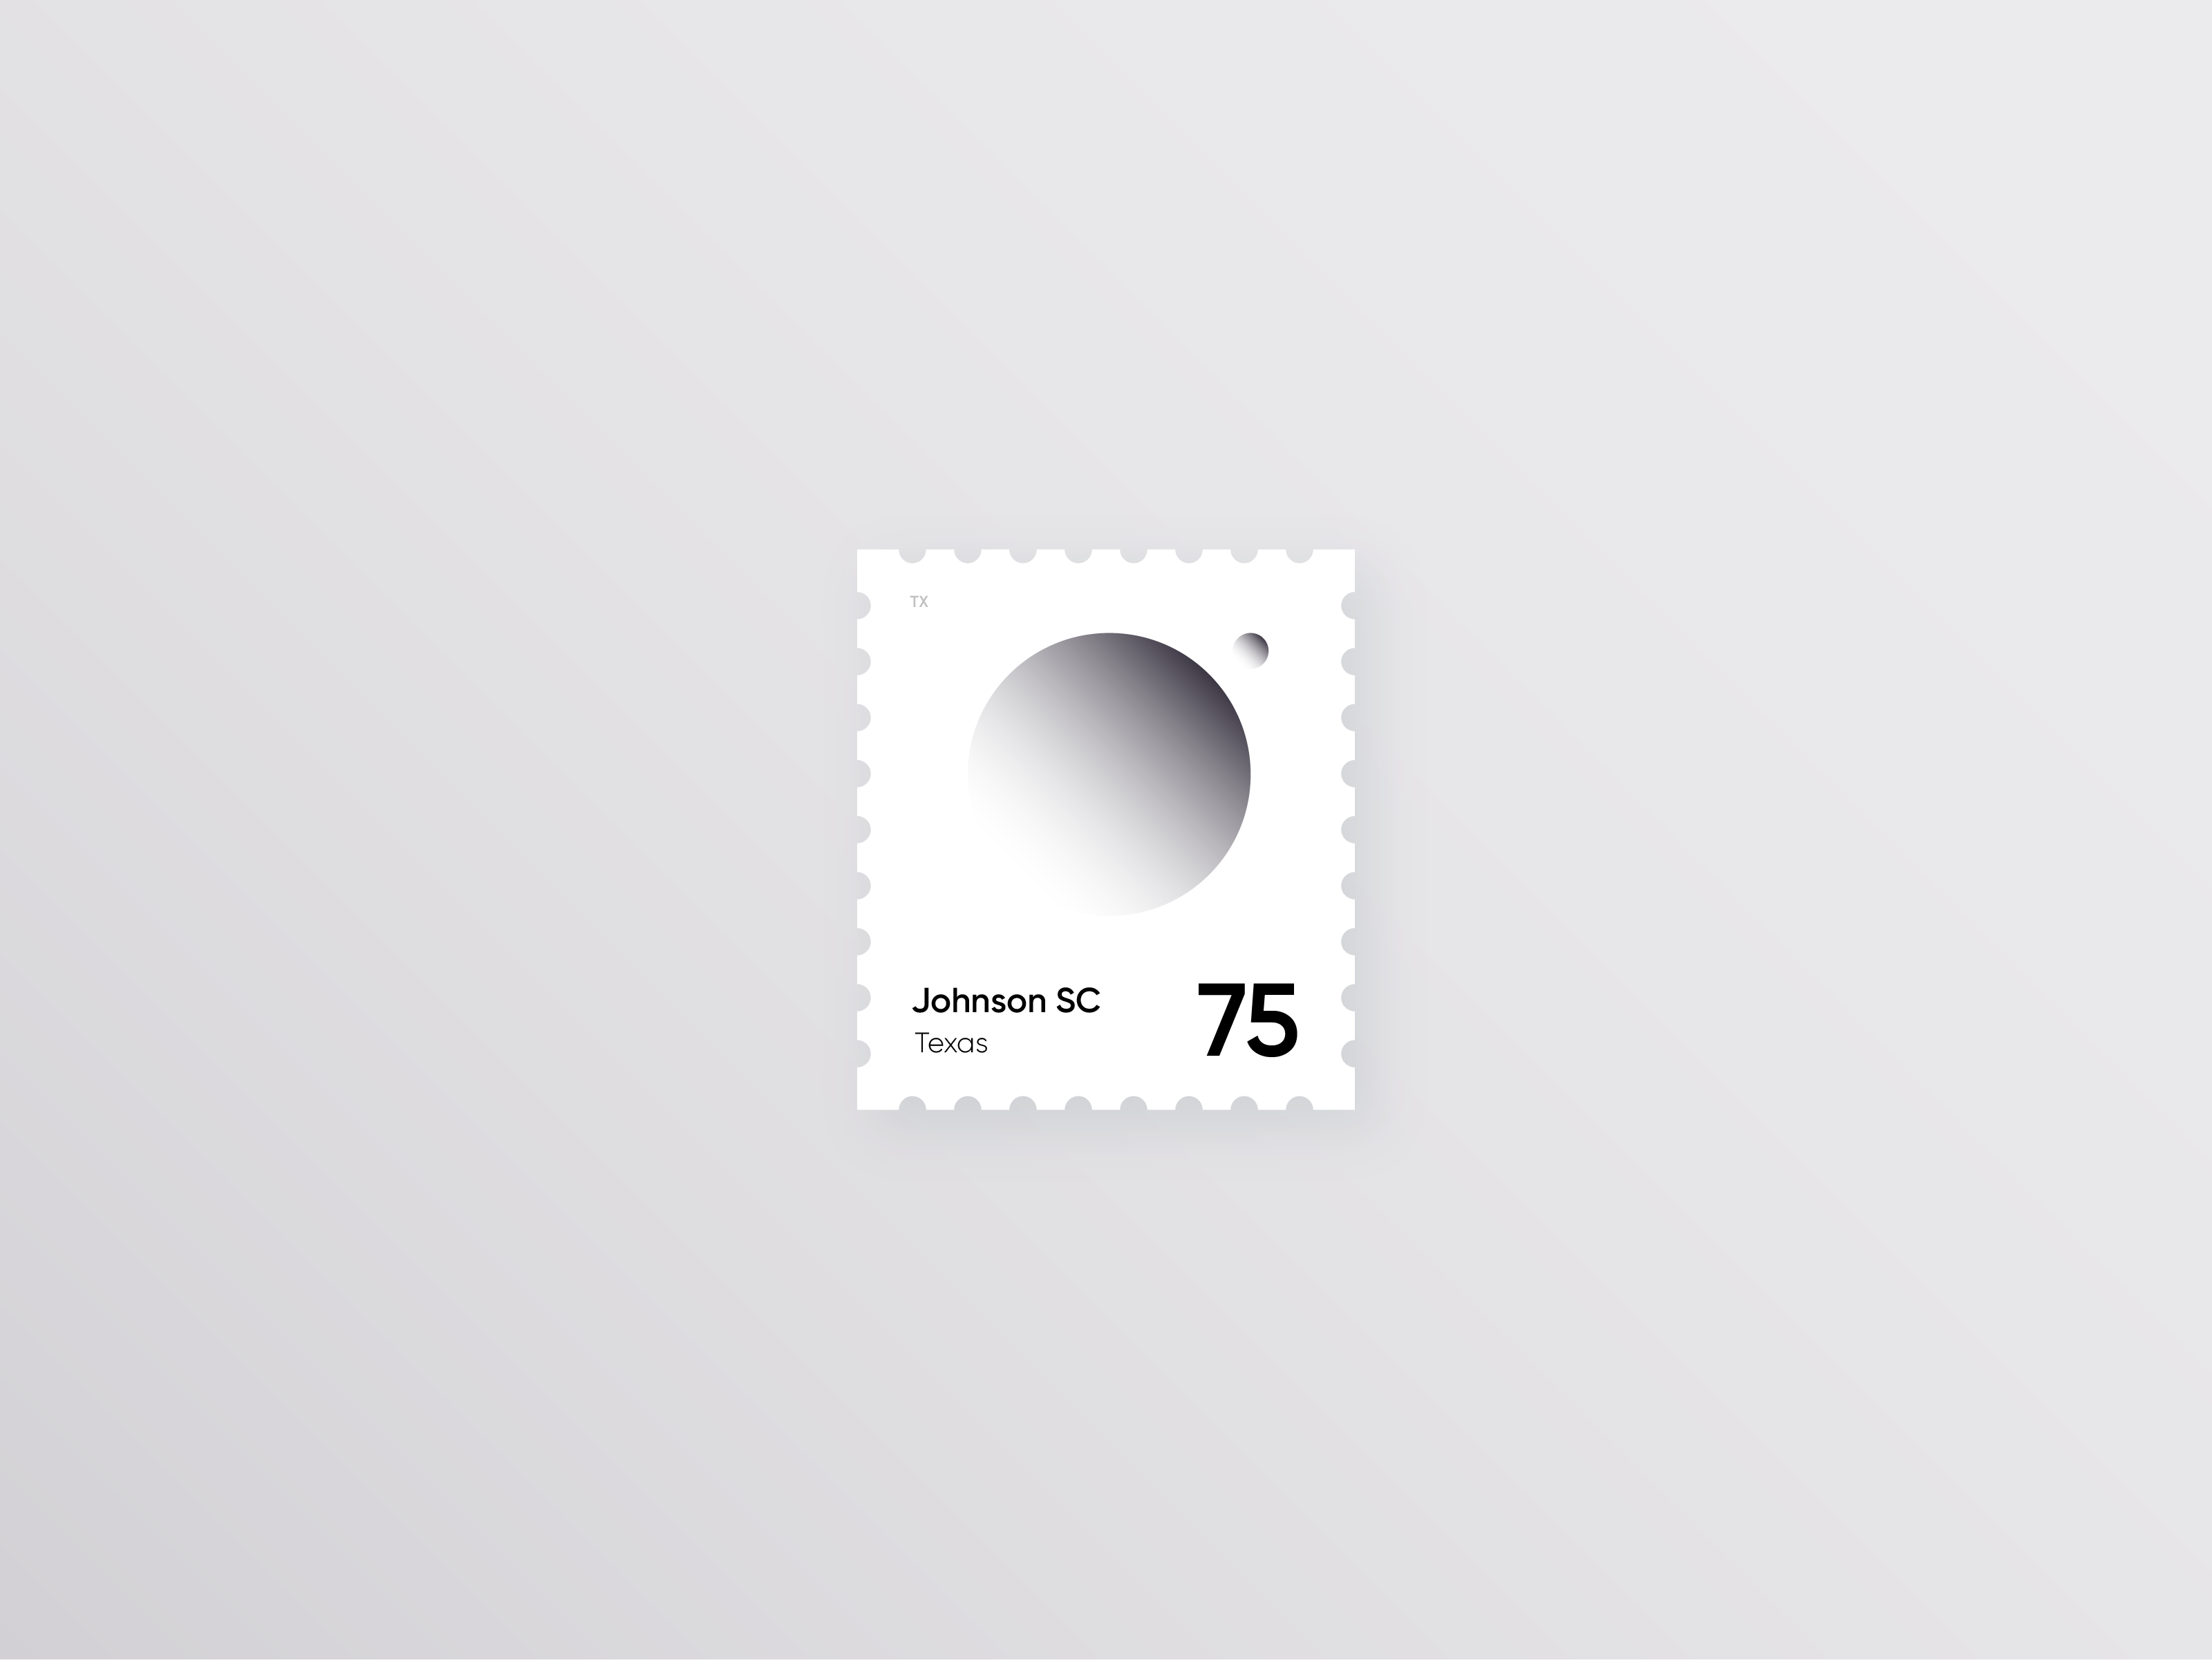 NASA Stamps Project Image 2